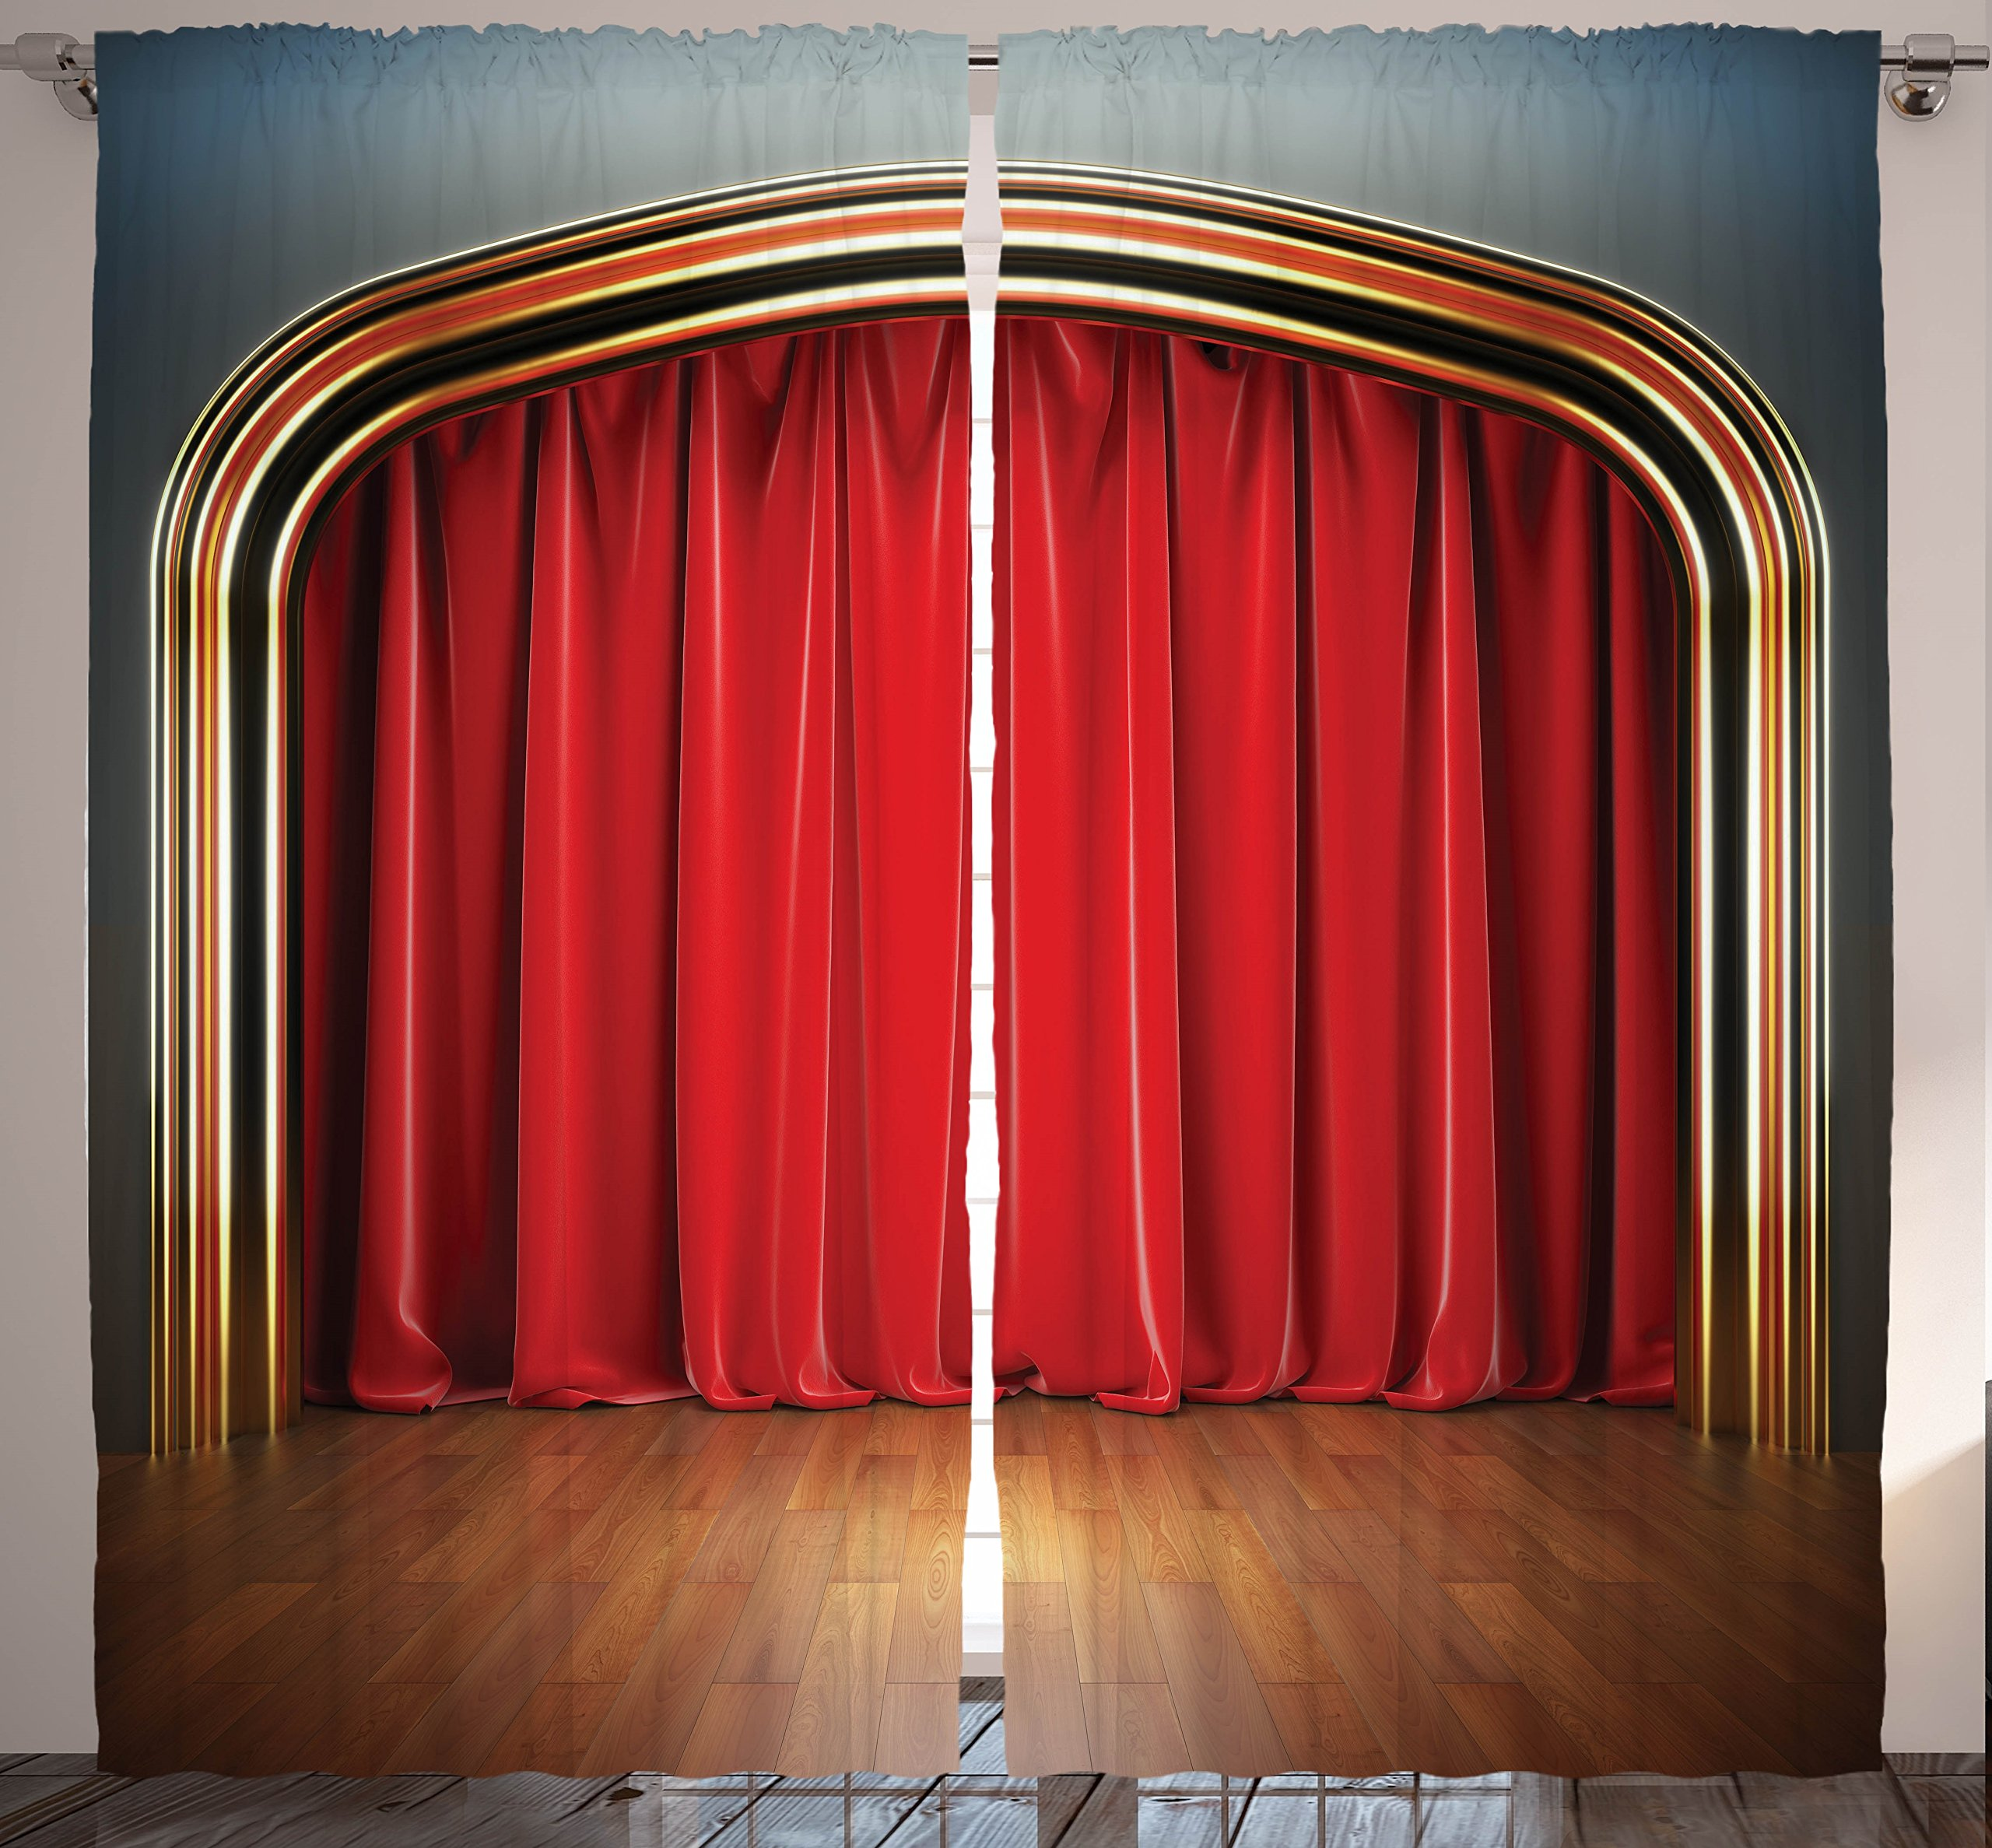 Stage Curtains For Bedroom Drapes Living Room Home Decor Concert Theatre Kids Teen Modern